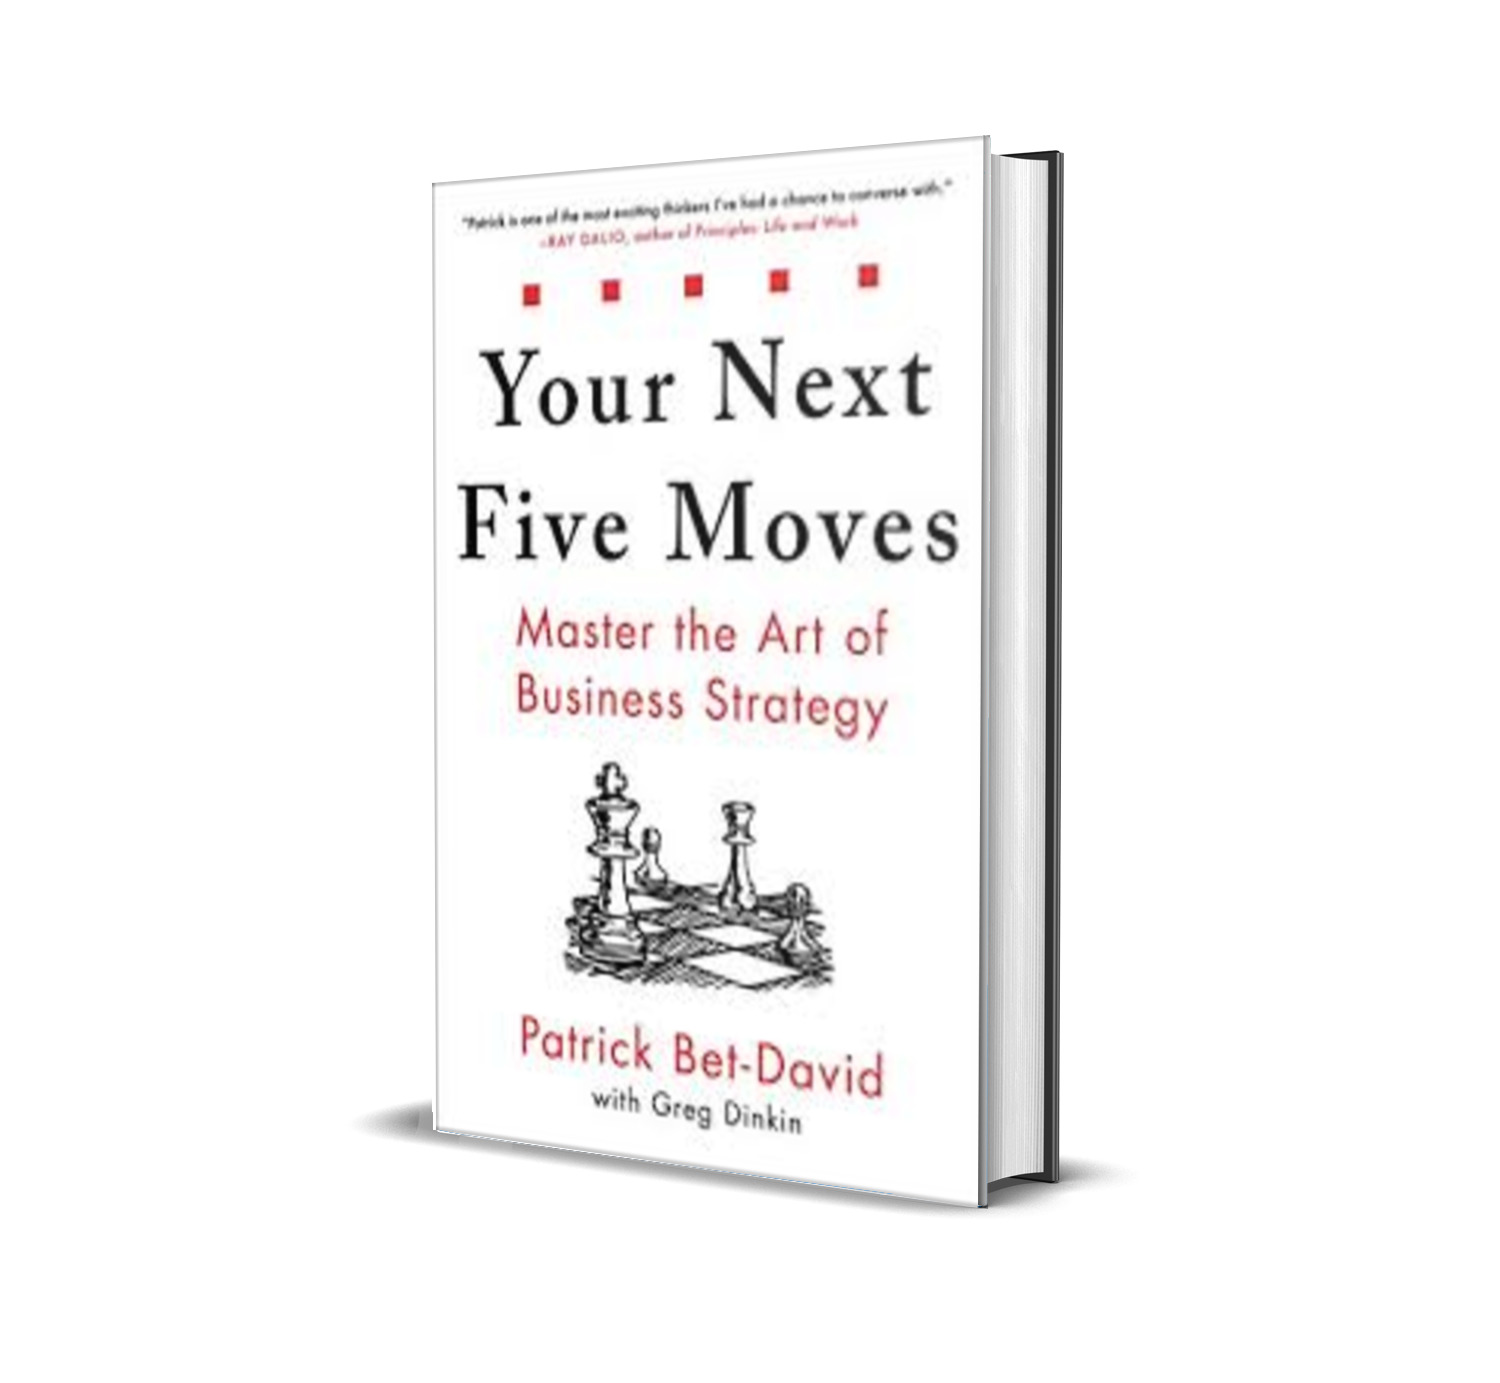 Your Next Five Moves : Master the art of business Strategy - Patrick Bet-David